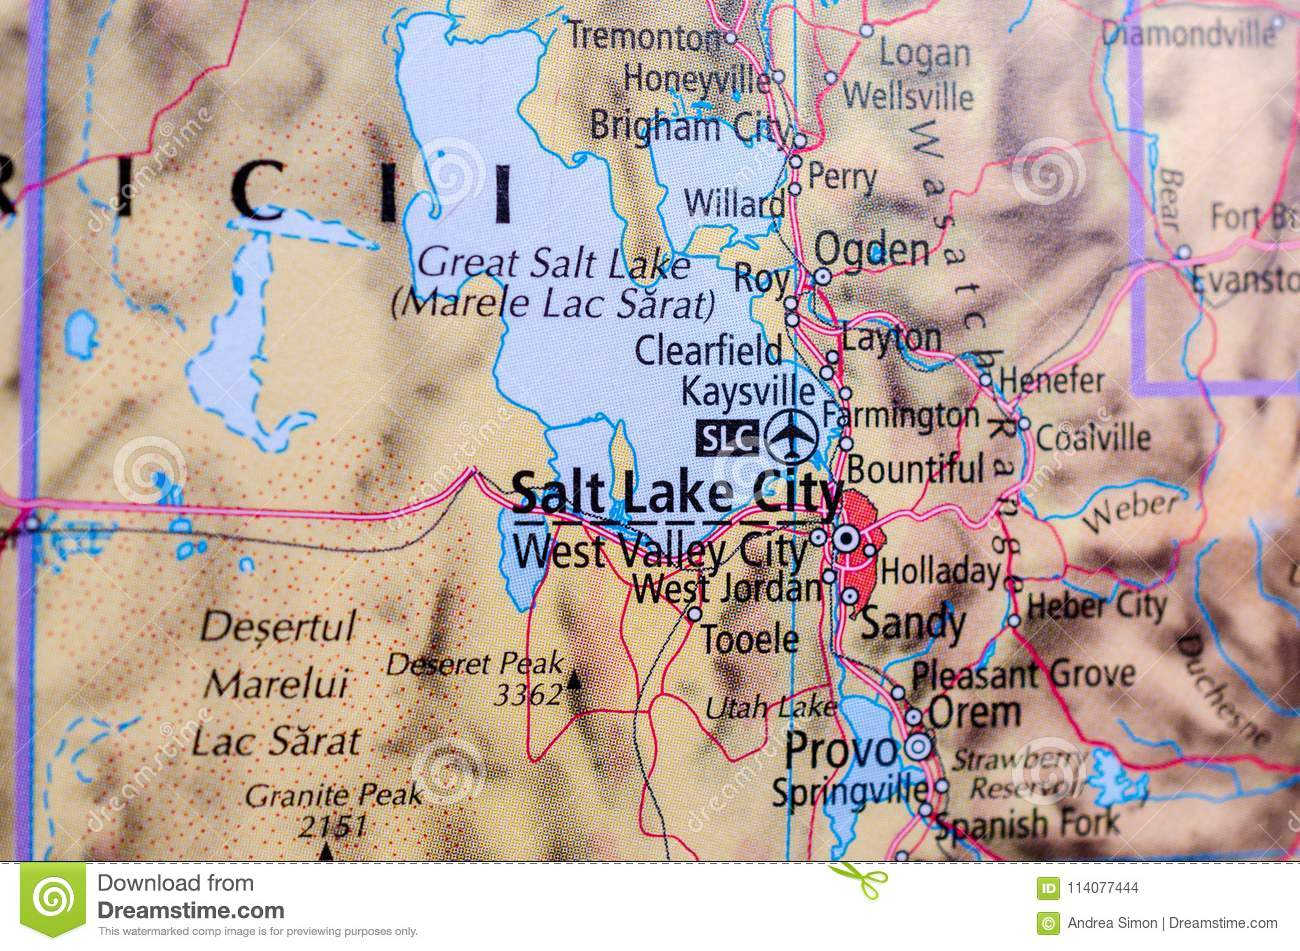 Salt Lake City on map stock photo. Image of maps, harbour ...